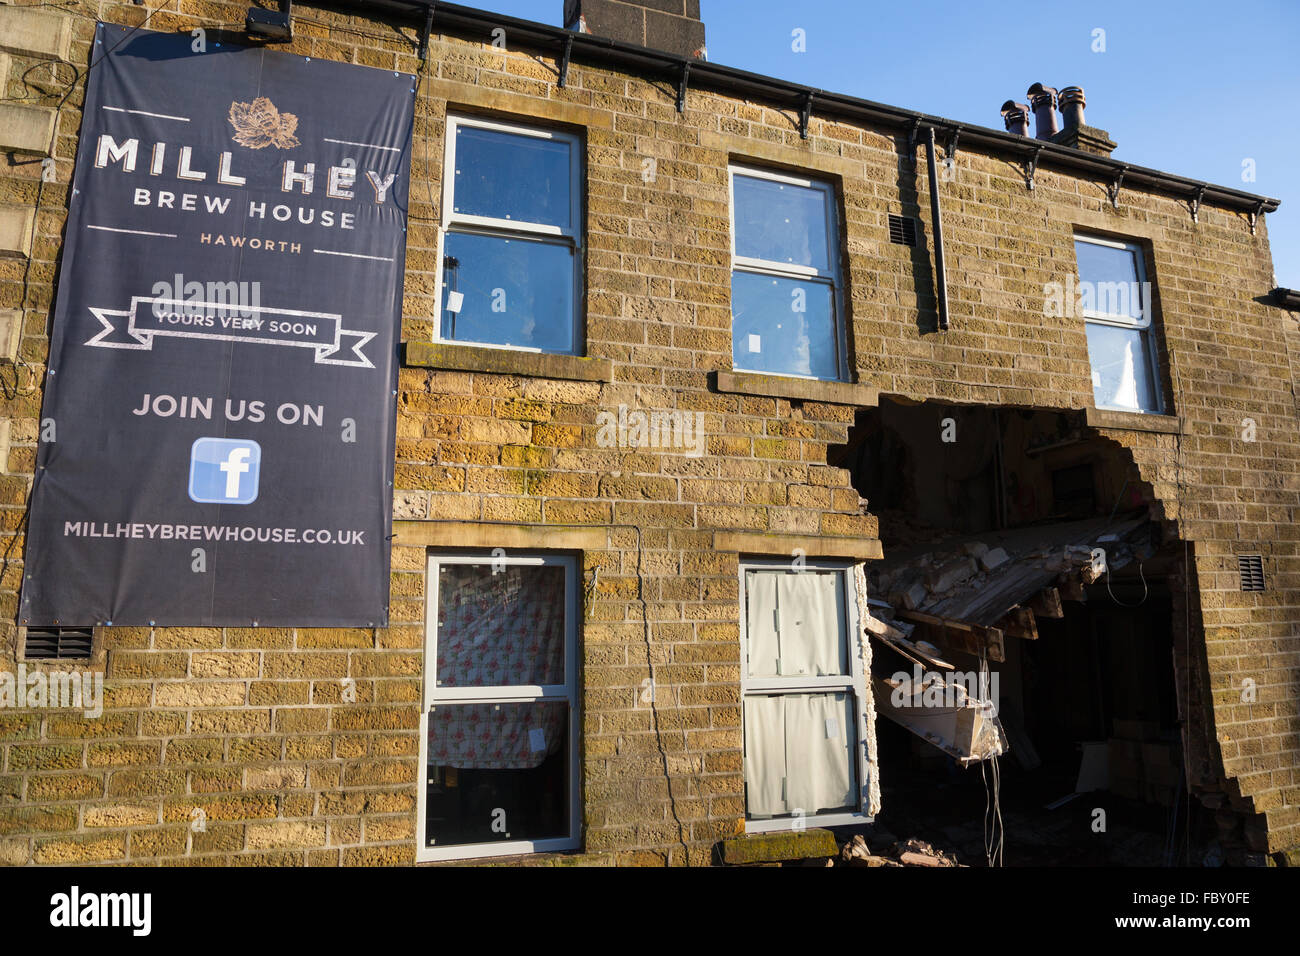 Flooding caused part of a wall of the Mill Hey pub in Haworth, England, to collapse. Stock Photo